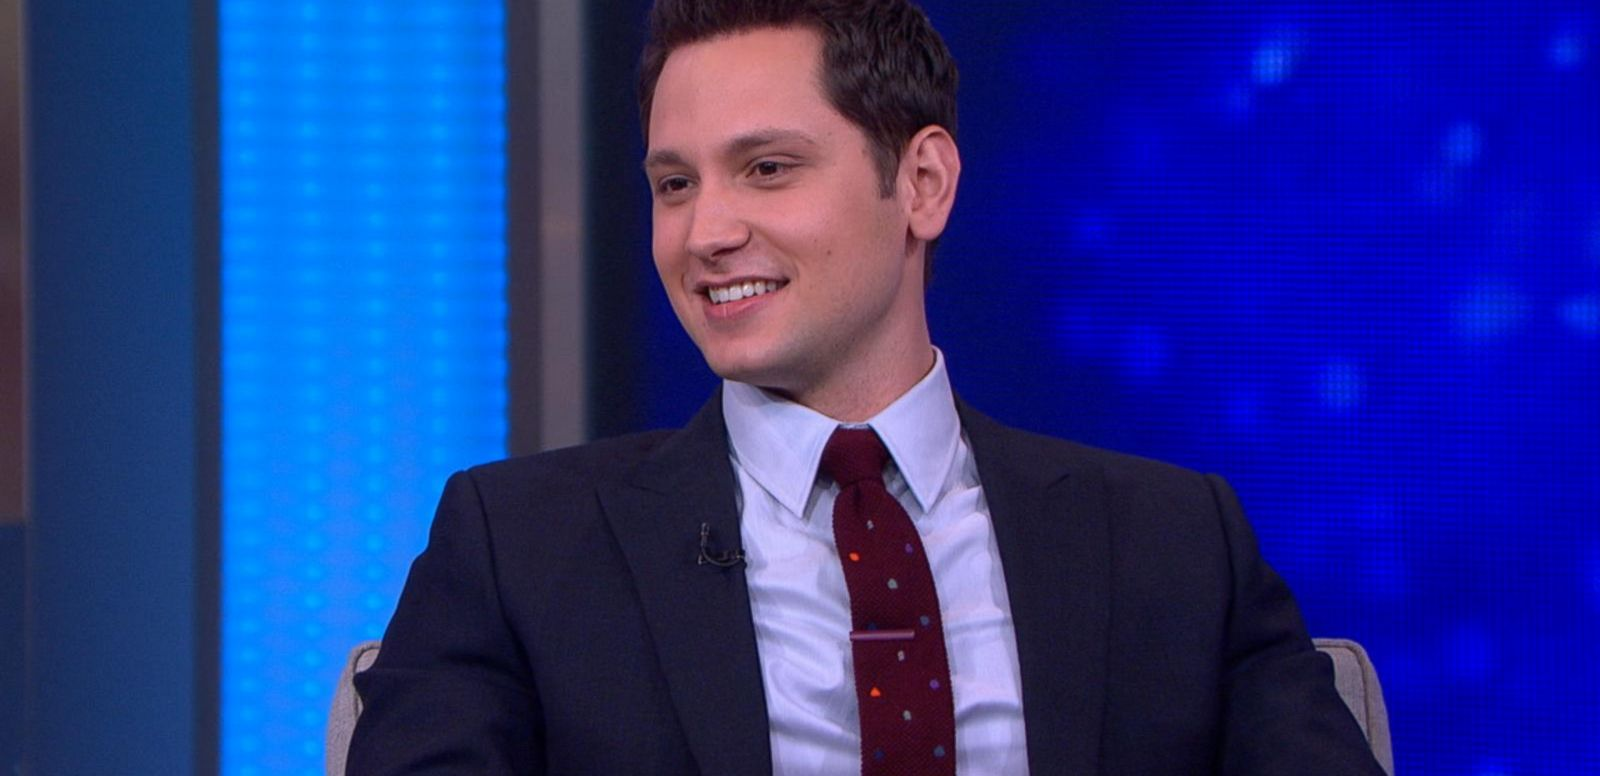 VIDEO: Matt McGorry on 'How to Get Away With Murder' Mid-Season Premiere